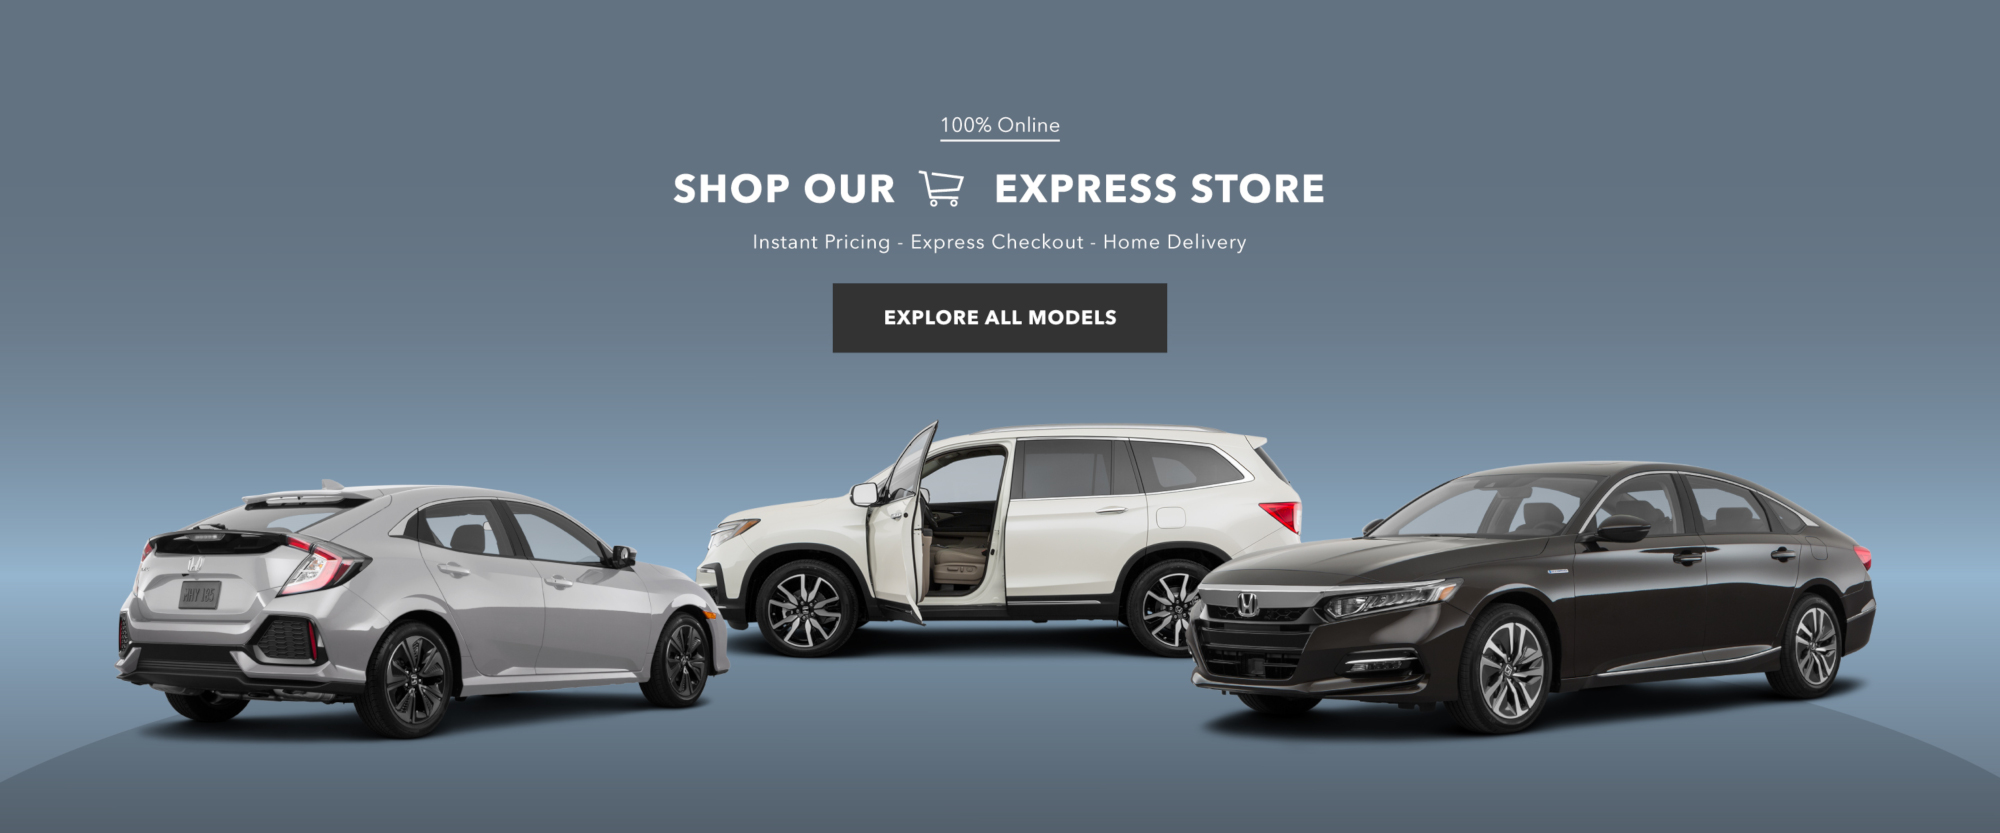 Express Store - Start Your Next Purchase Online